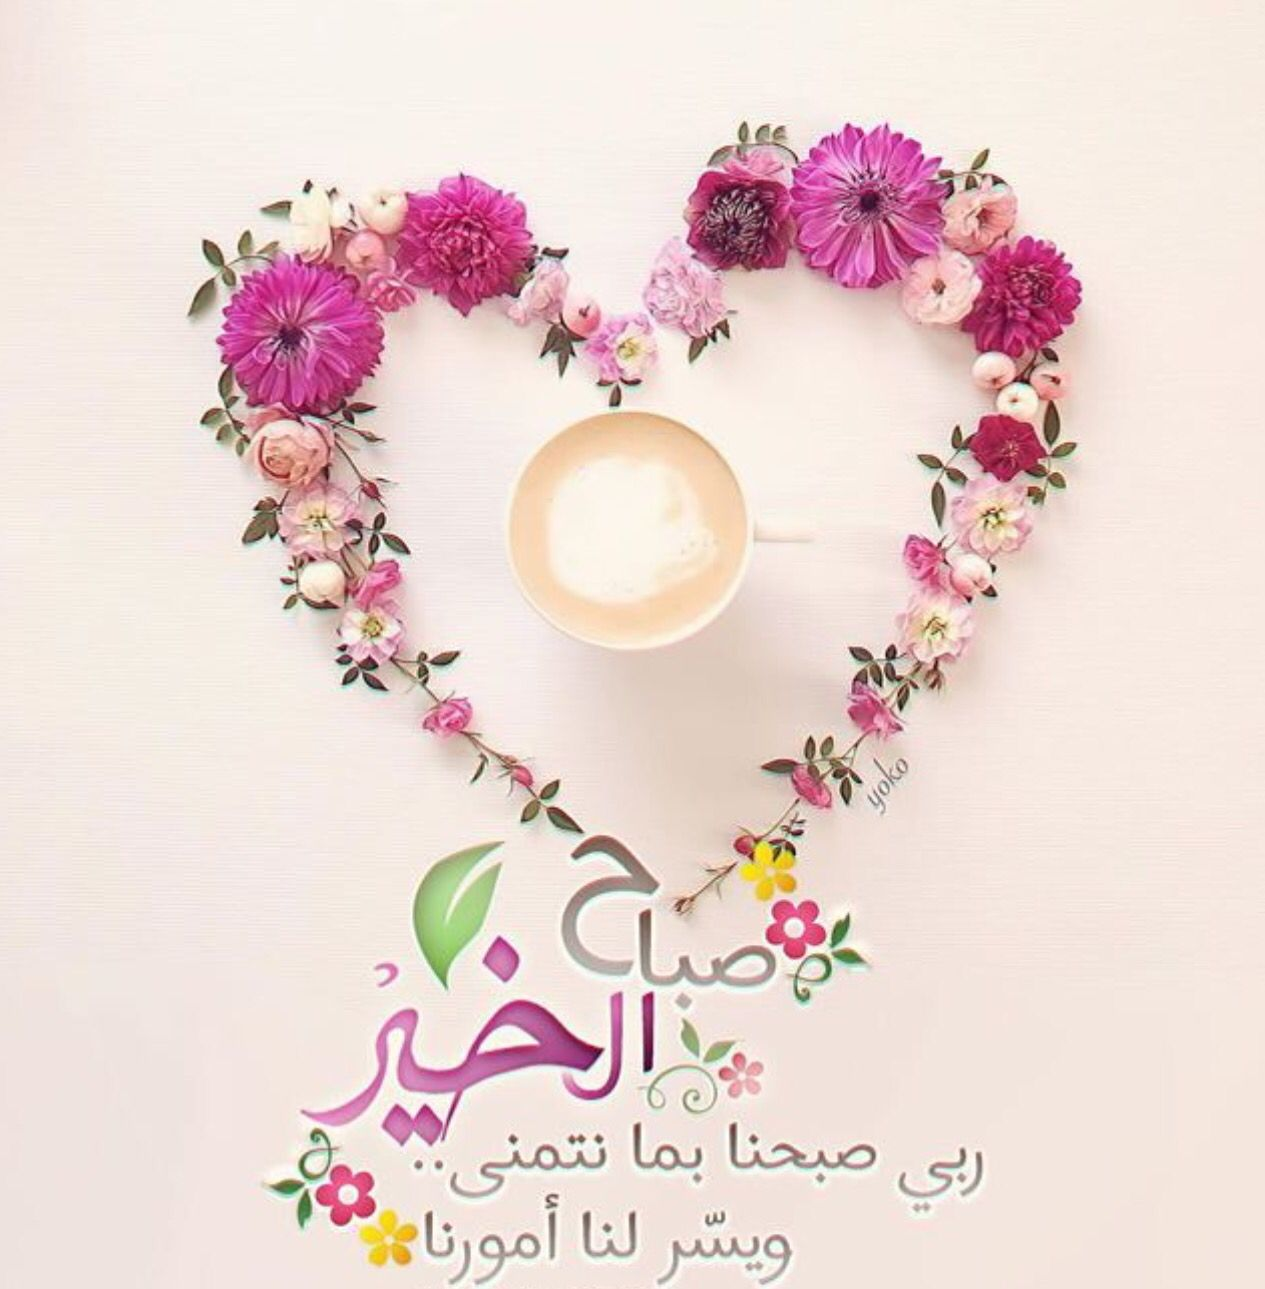 صباح الخير Good Morning Wallpaper Good Night Messages Good Morning Arabic